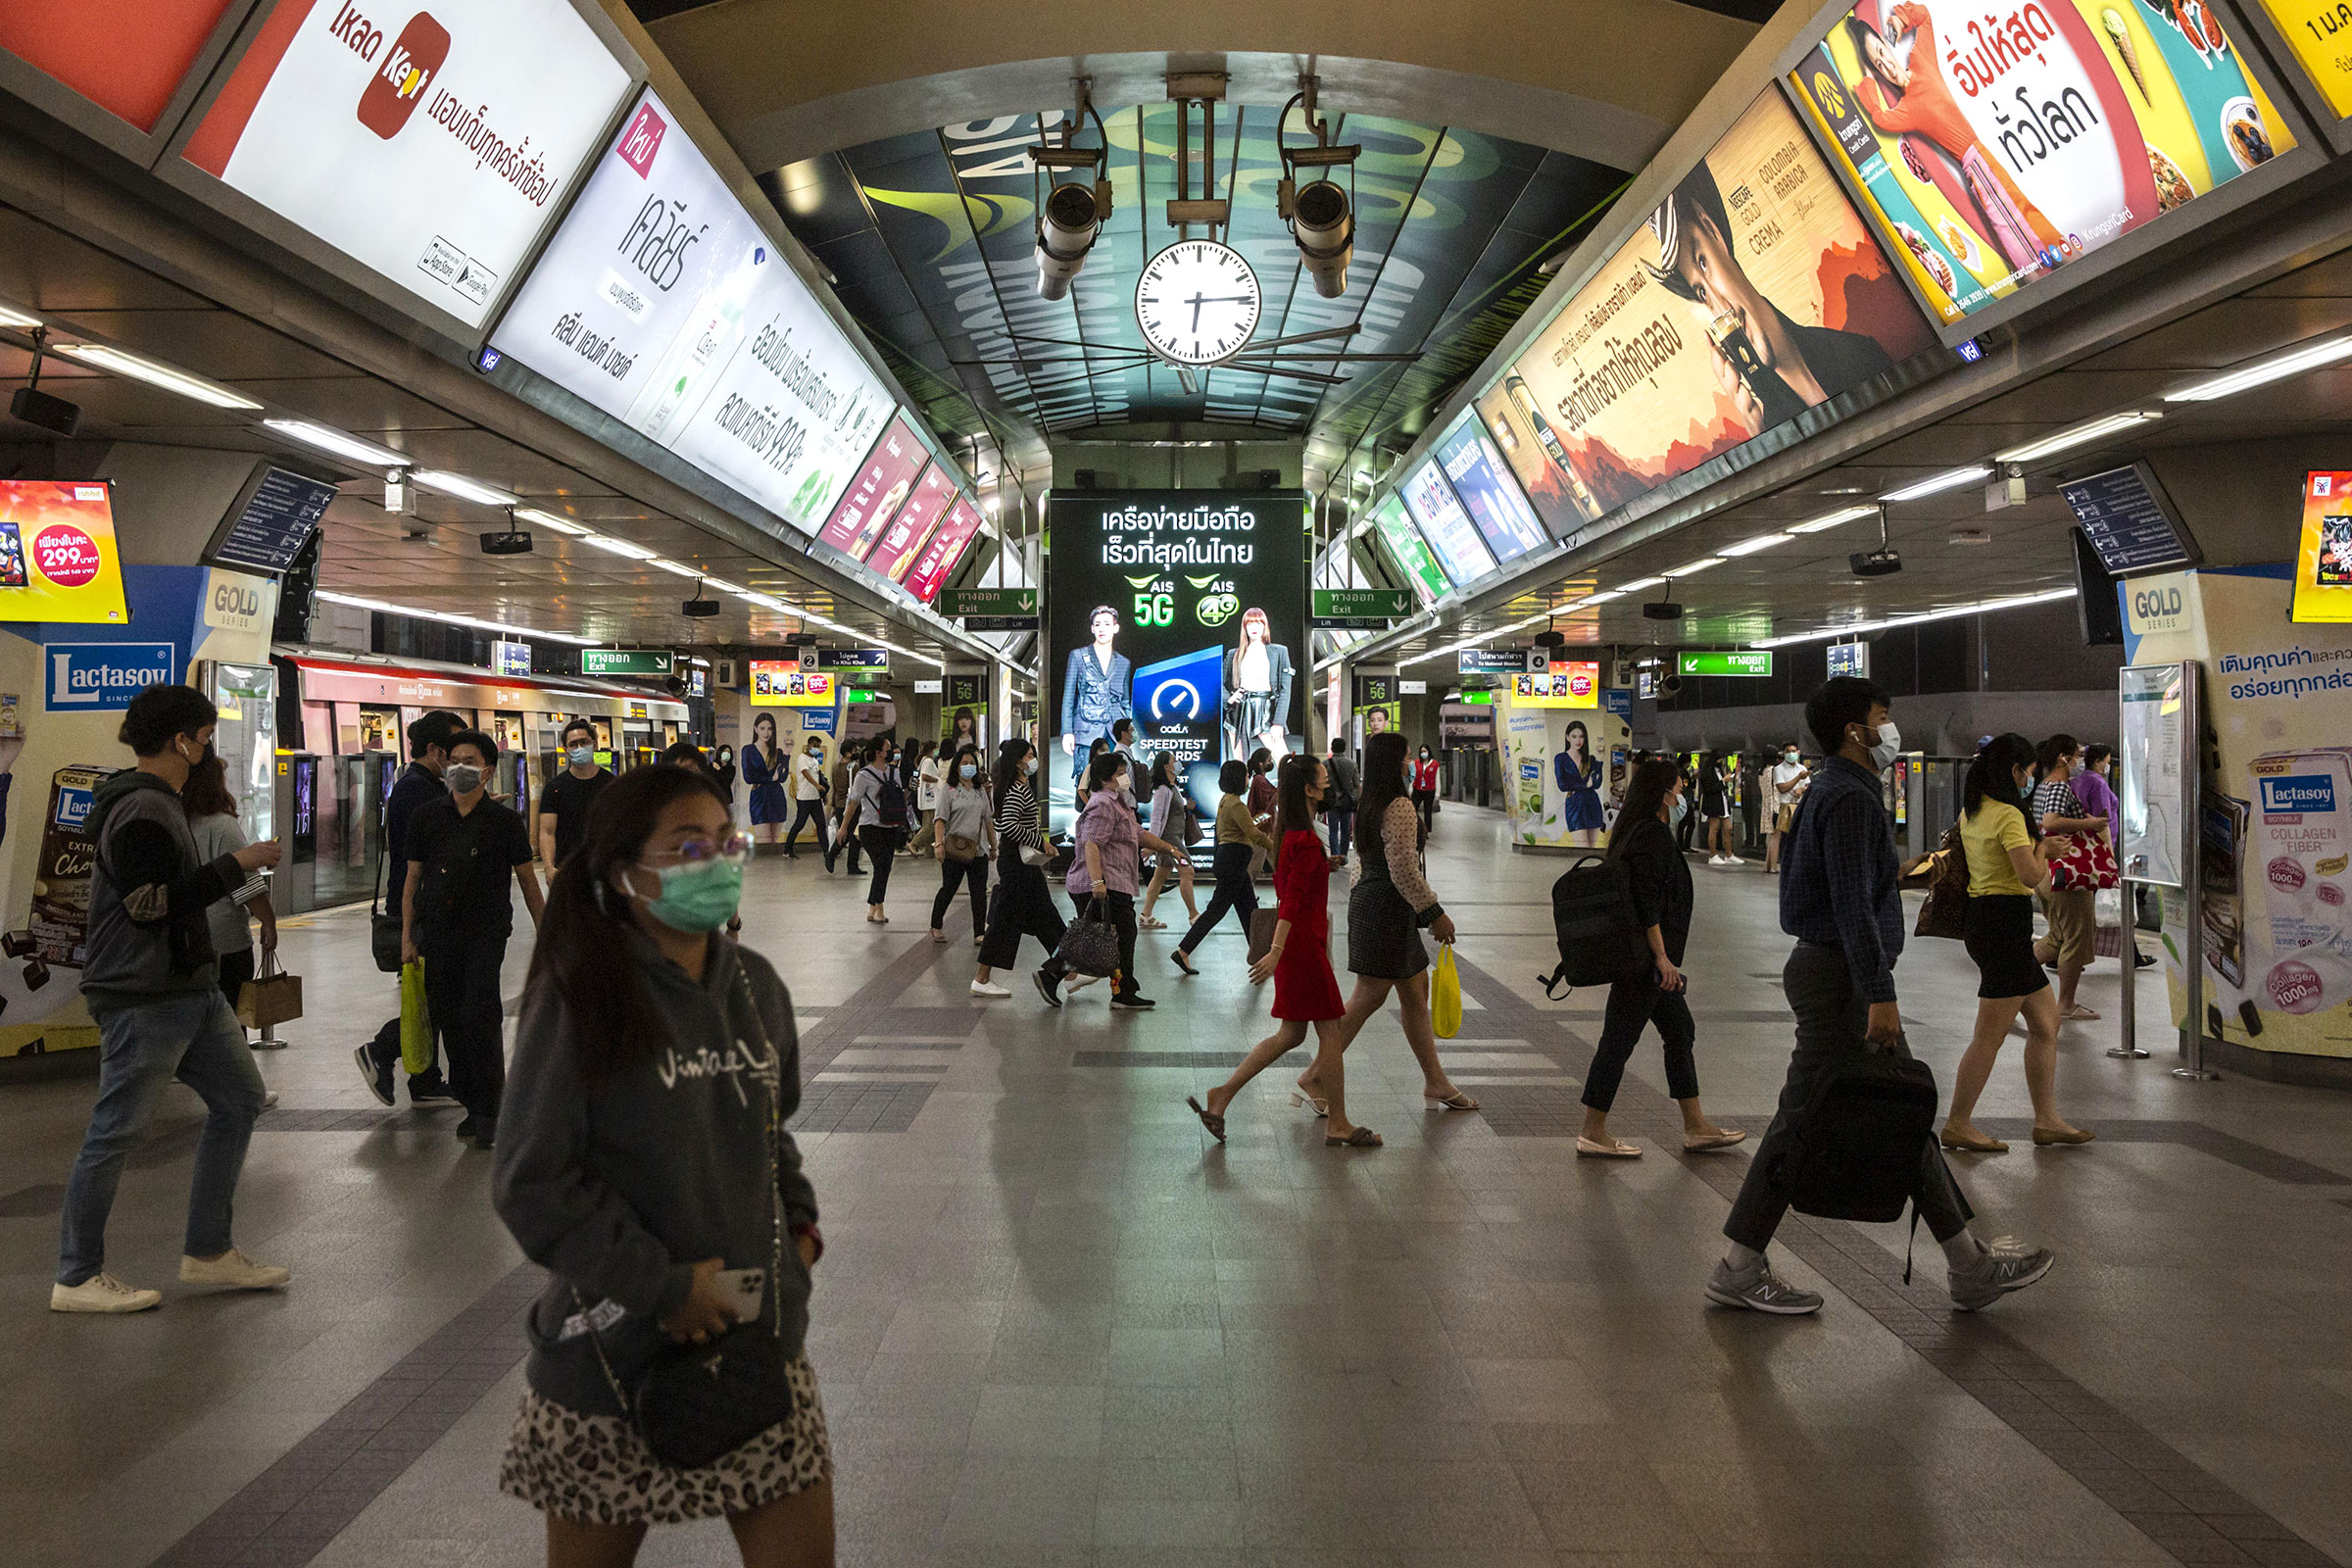 Commuters walk through Siam BTS Station in Bangkok, Thailand, on Monday, January 4.